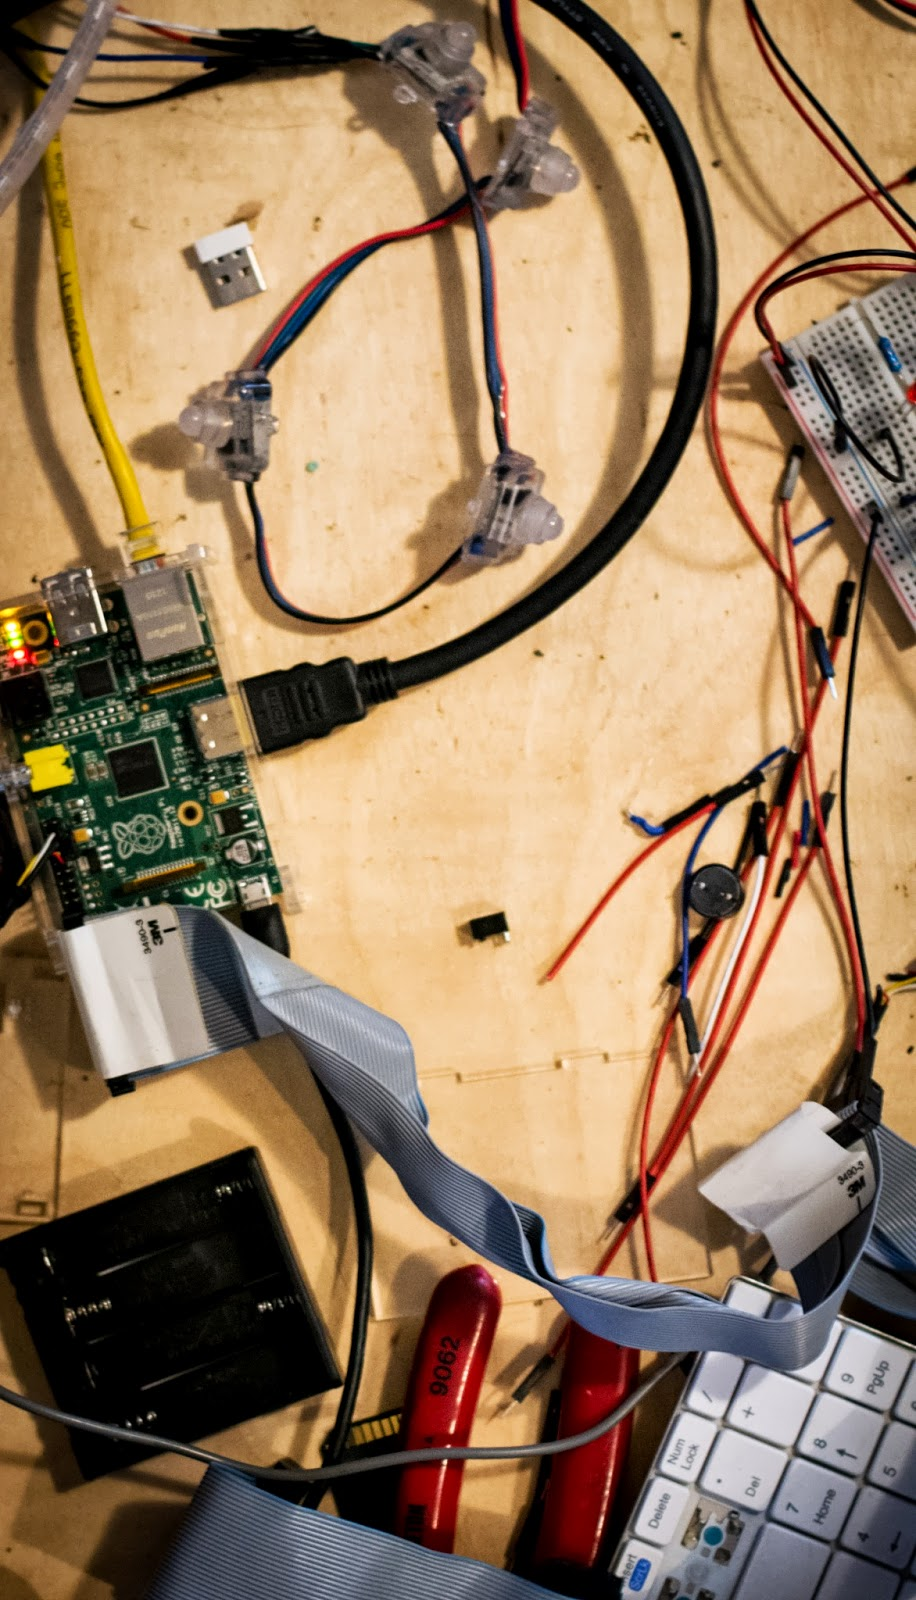 raspberry pi ws2801 breadboard configuration taken in the midst of